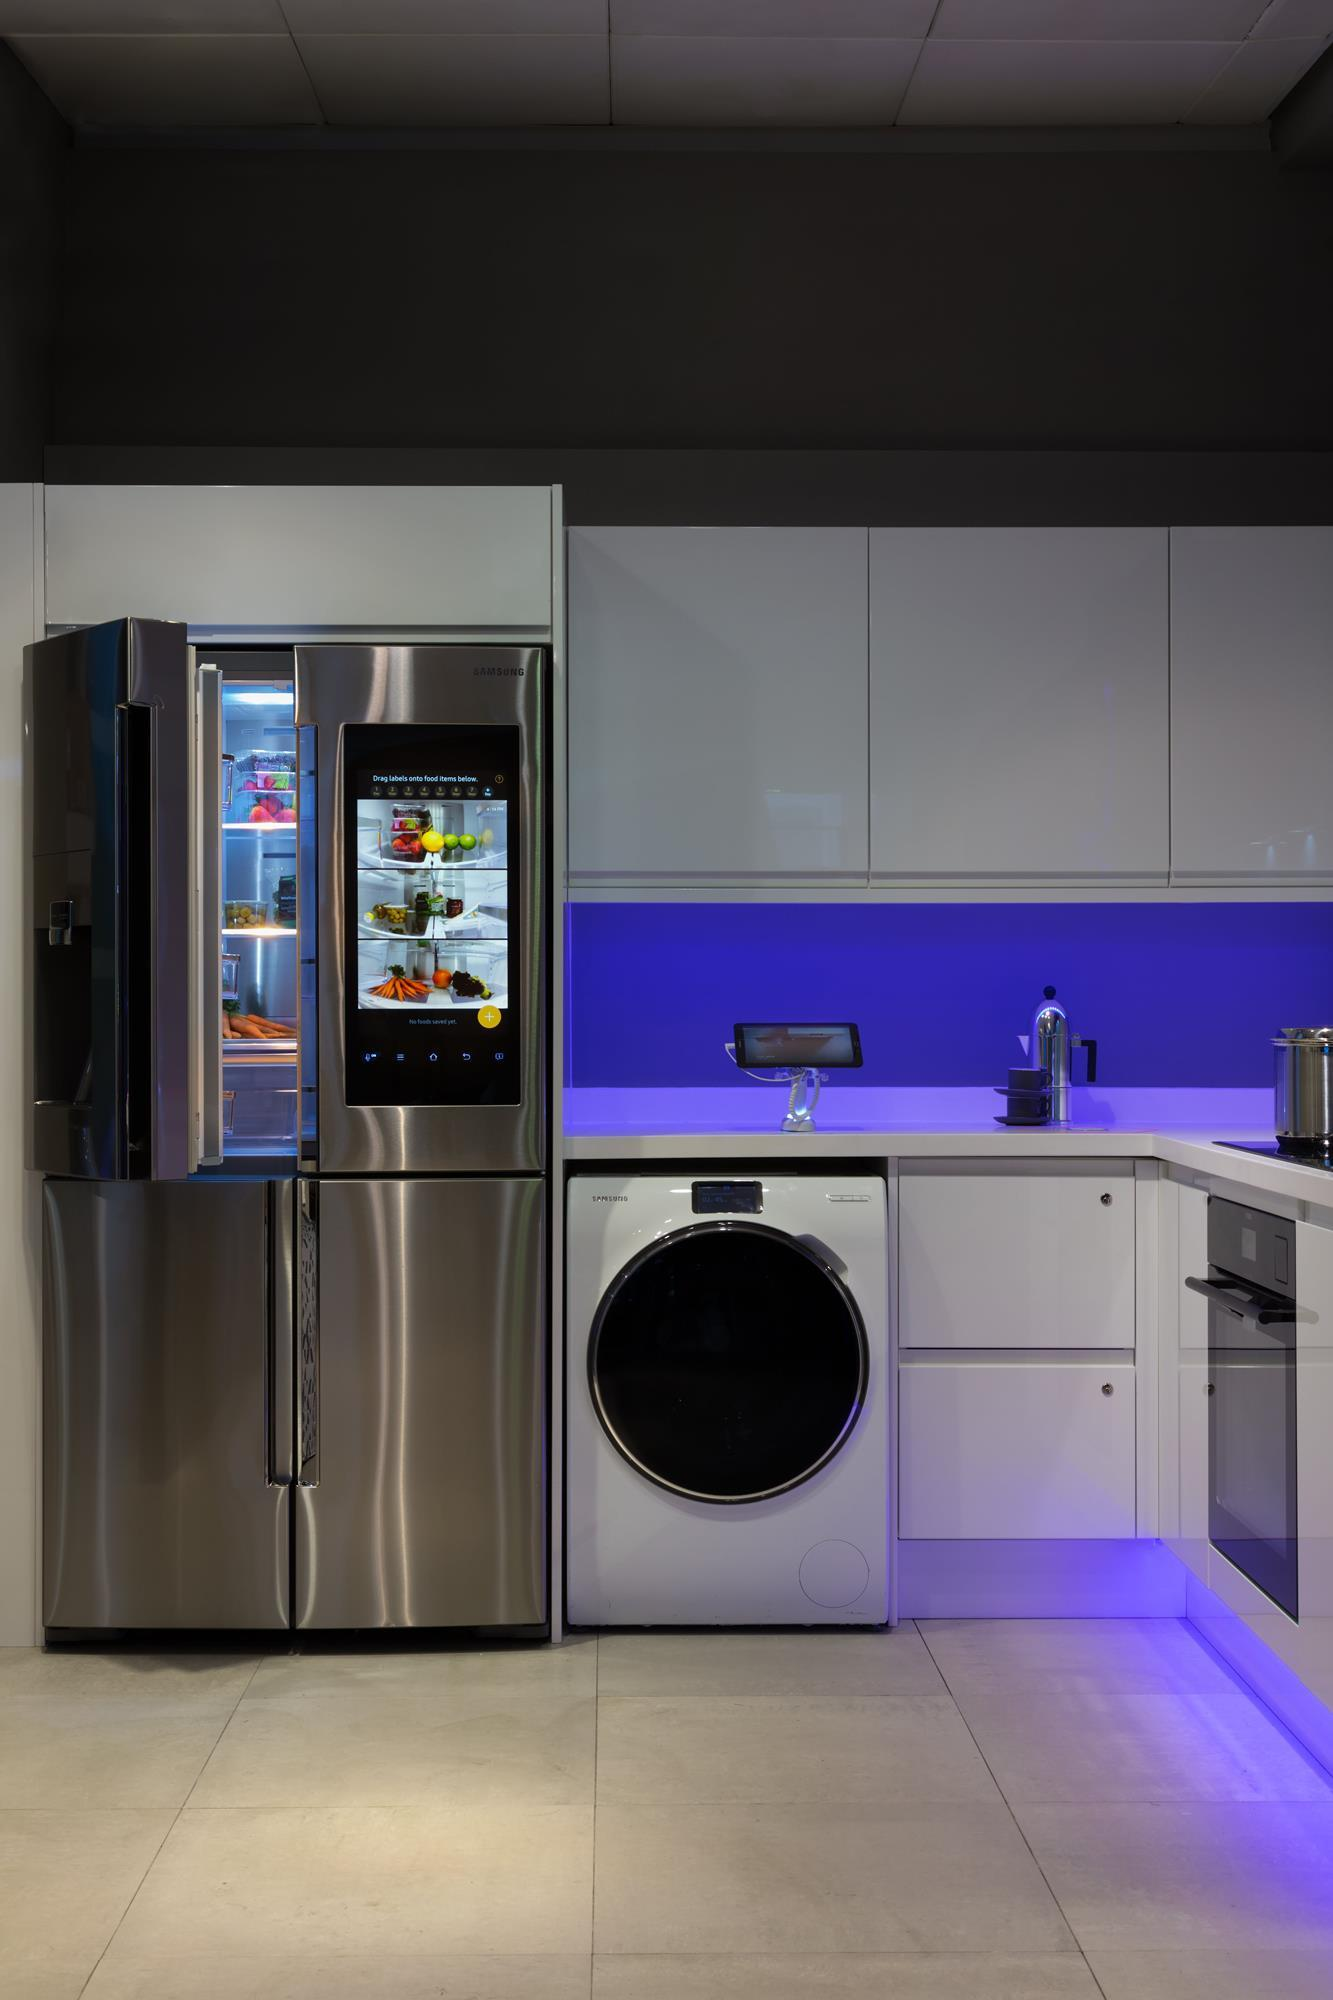 John Lewis Kitchen Appliances In Pictures John Lewis Opens Smart Home Area In Flagship Store